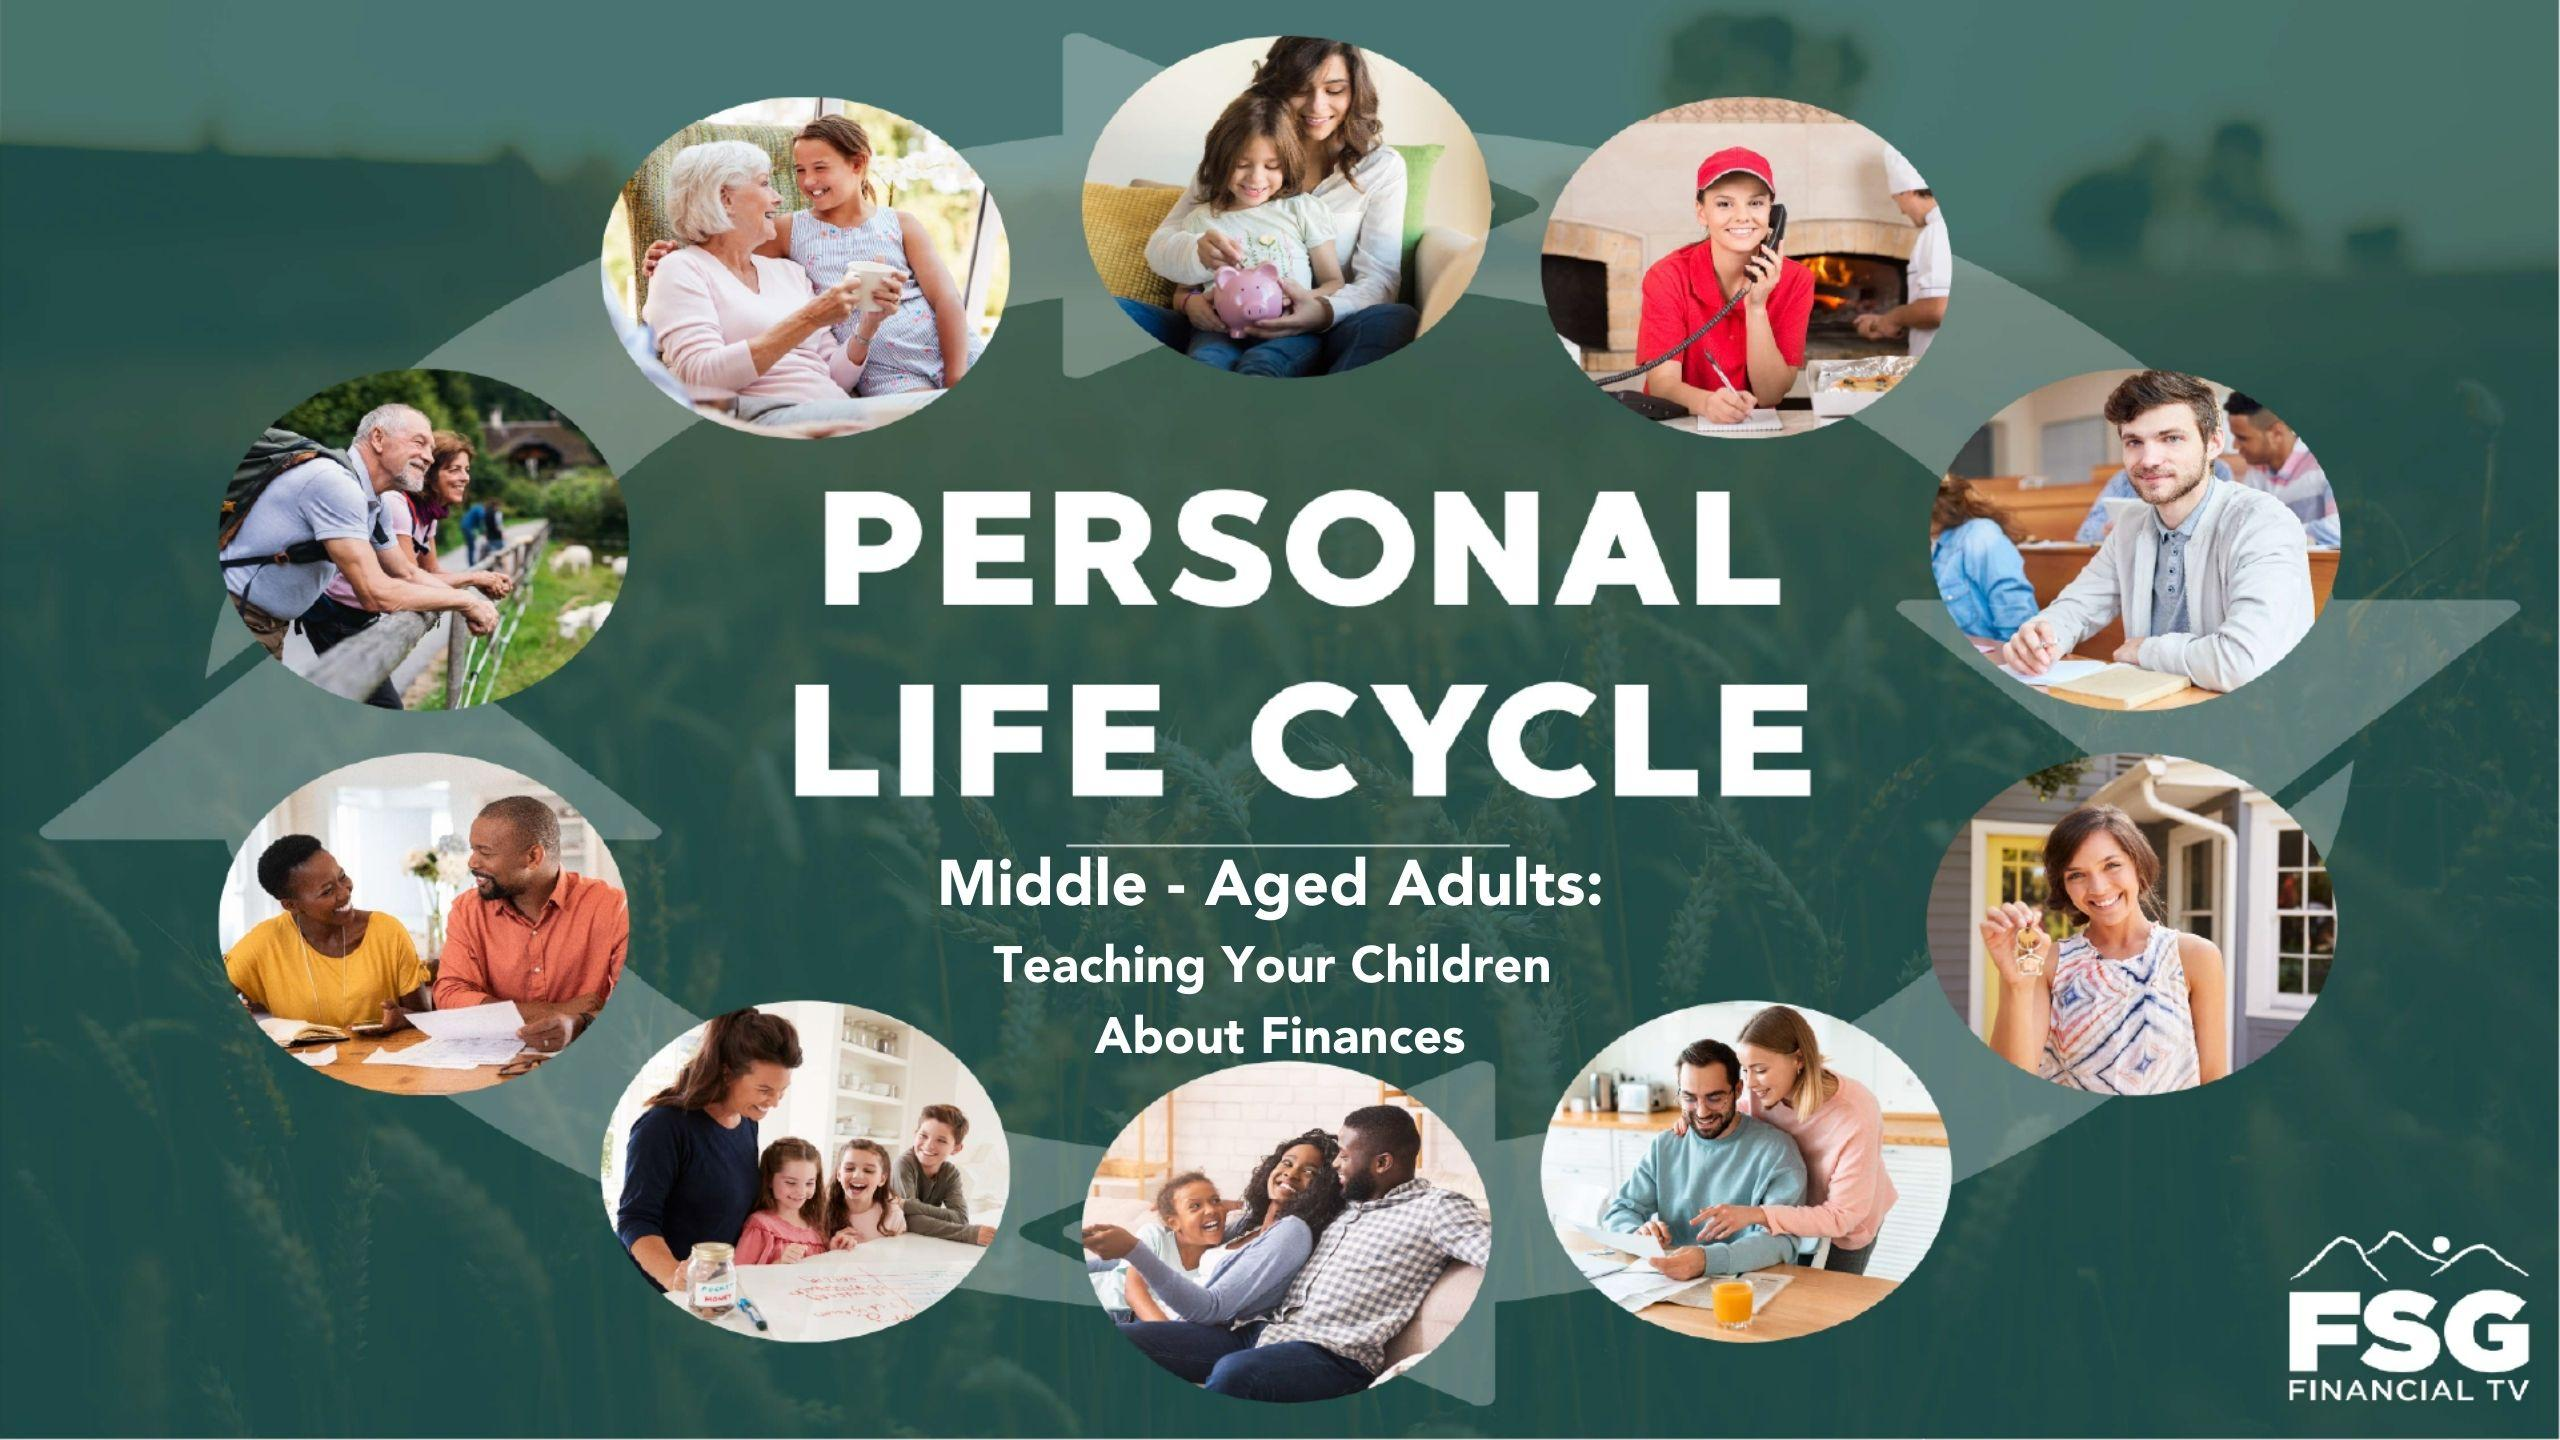 Personal Life Cycle: Middle - Aged Adults- Teaching Your Children About Finances Thumbnail